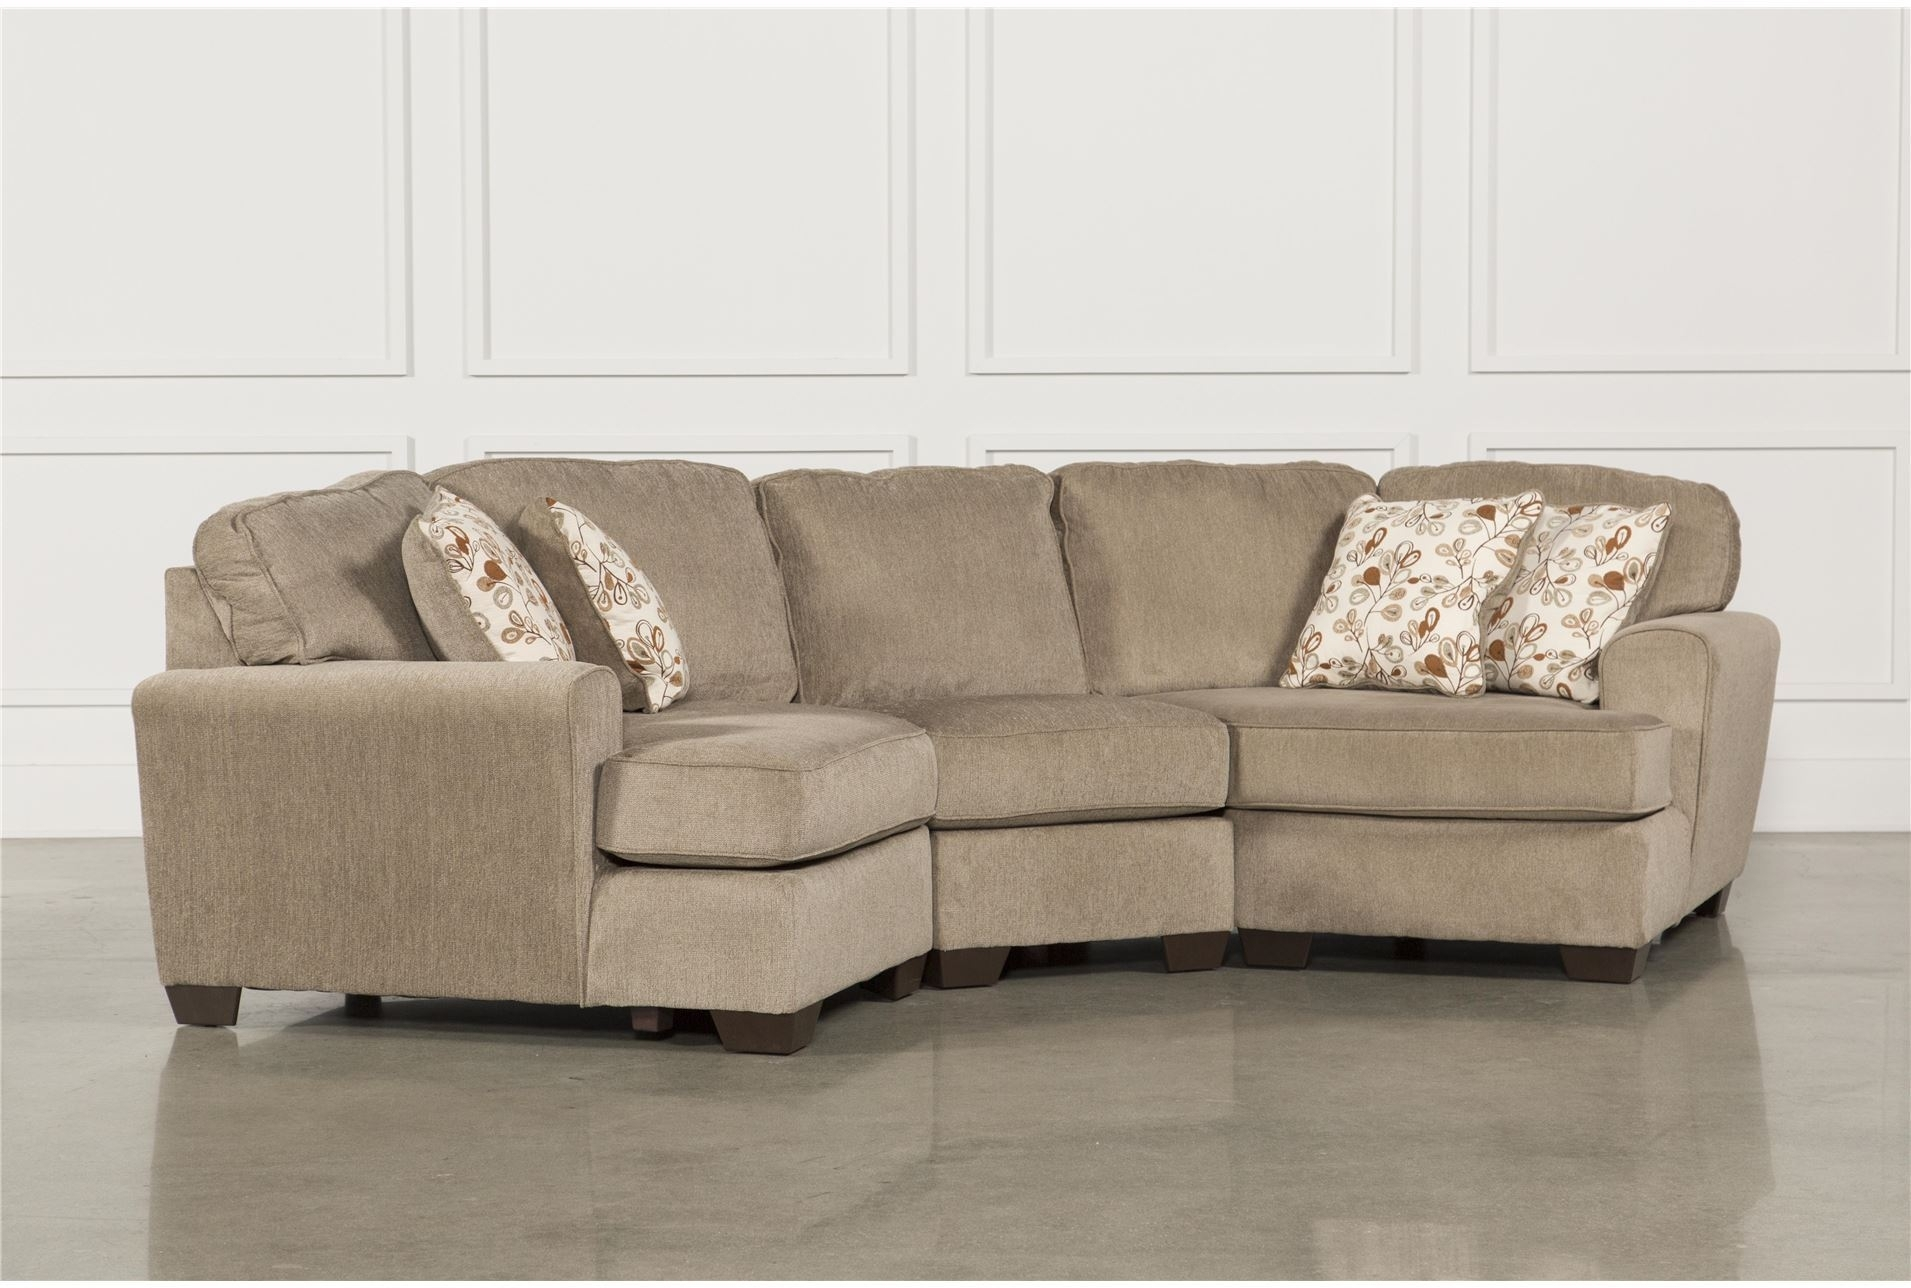 New Cuddler Sectional Sofa 20 For Your Contemporary Sofa Inspiration intended for Sectional Sofas With Cuddler (Image 6 of 10)